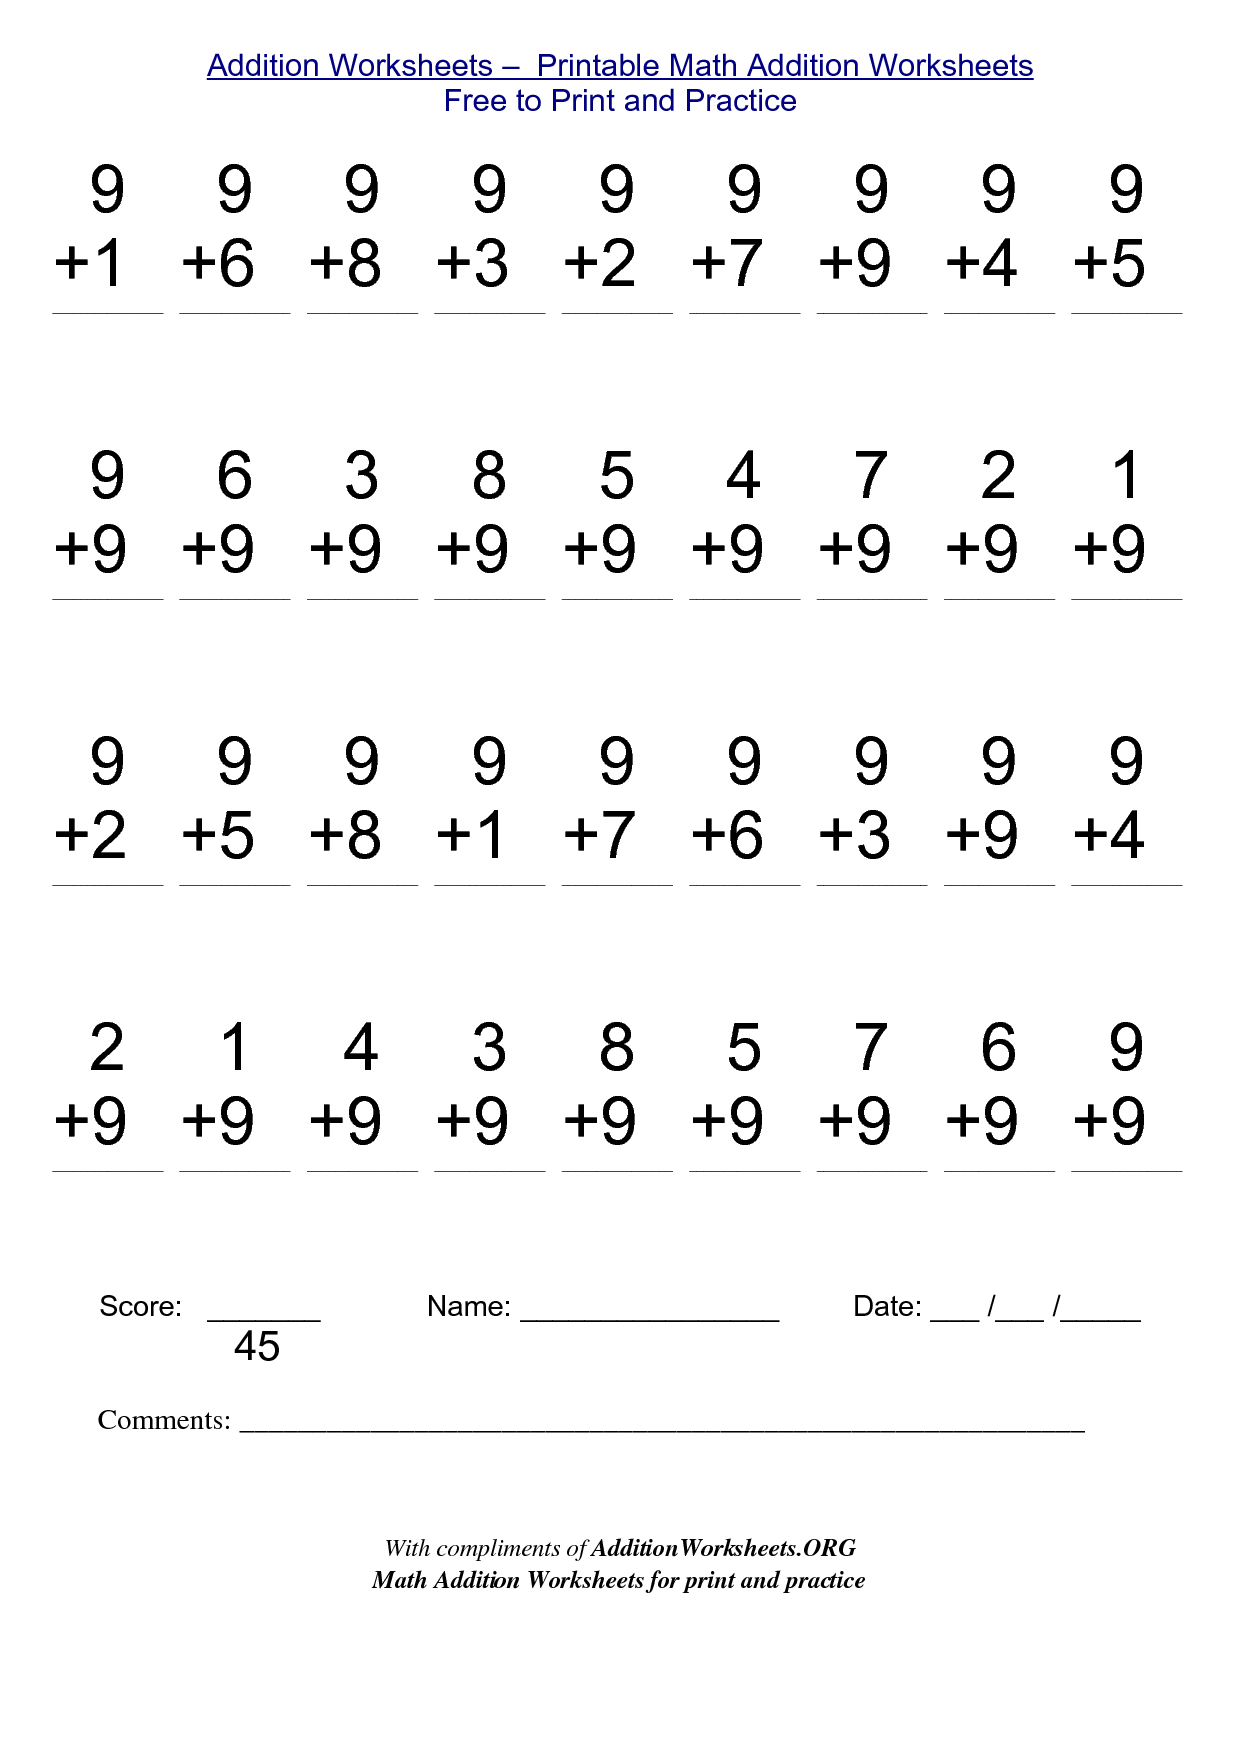 Free Worksheet 100 Addition Facts 120 For Educators – Free Math Fact Worksheets